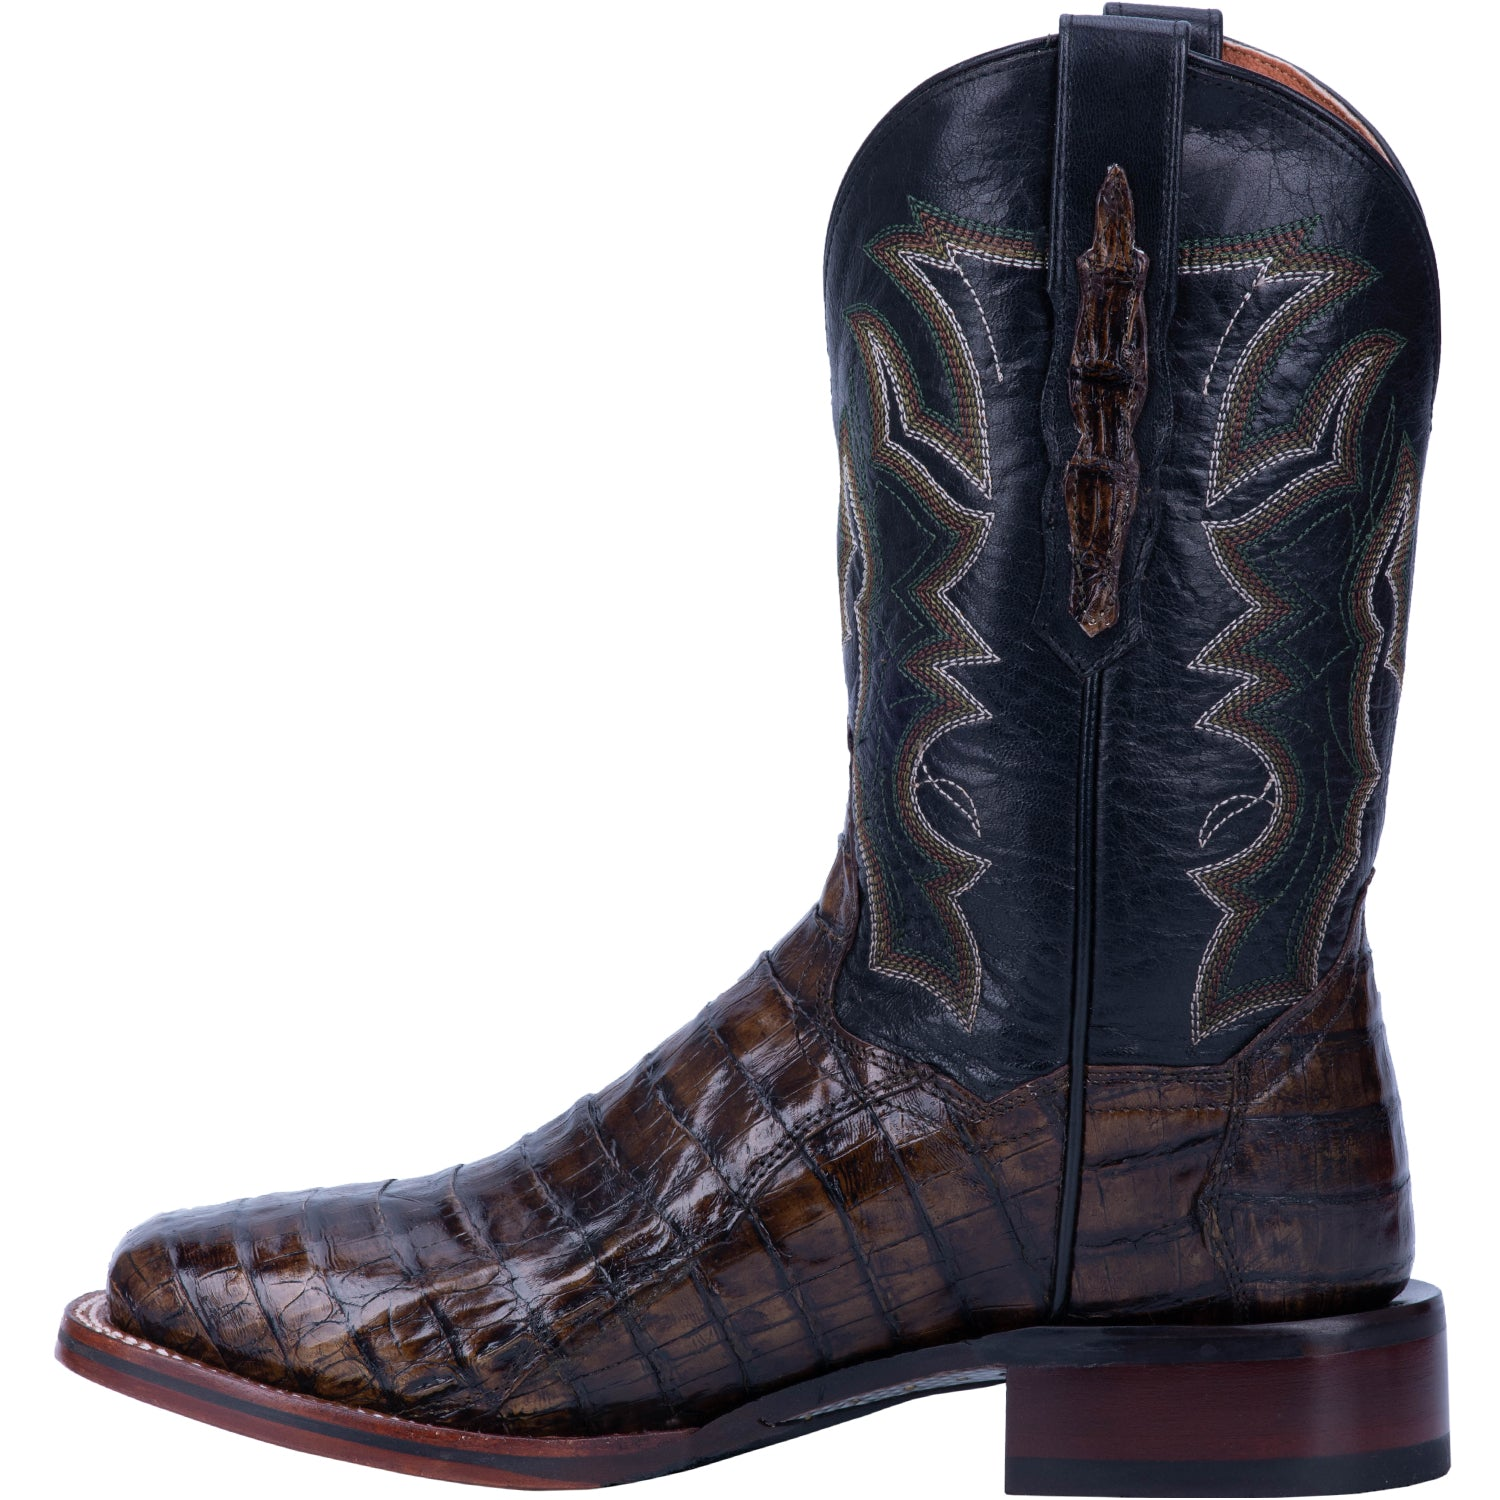 KINGSLY CAIMAN BOOT 5547779883050